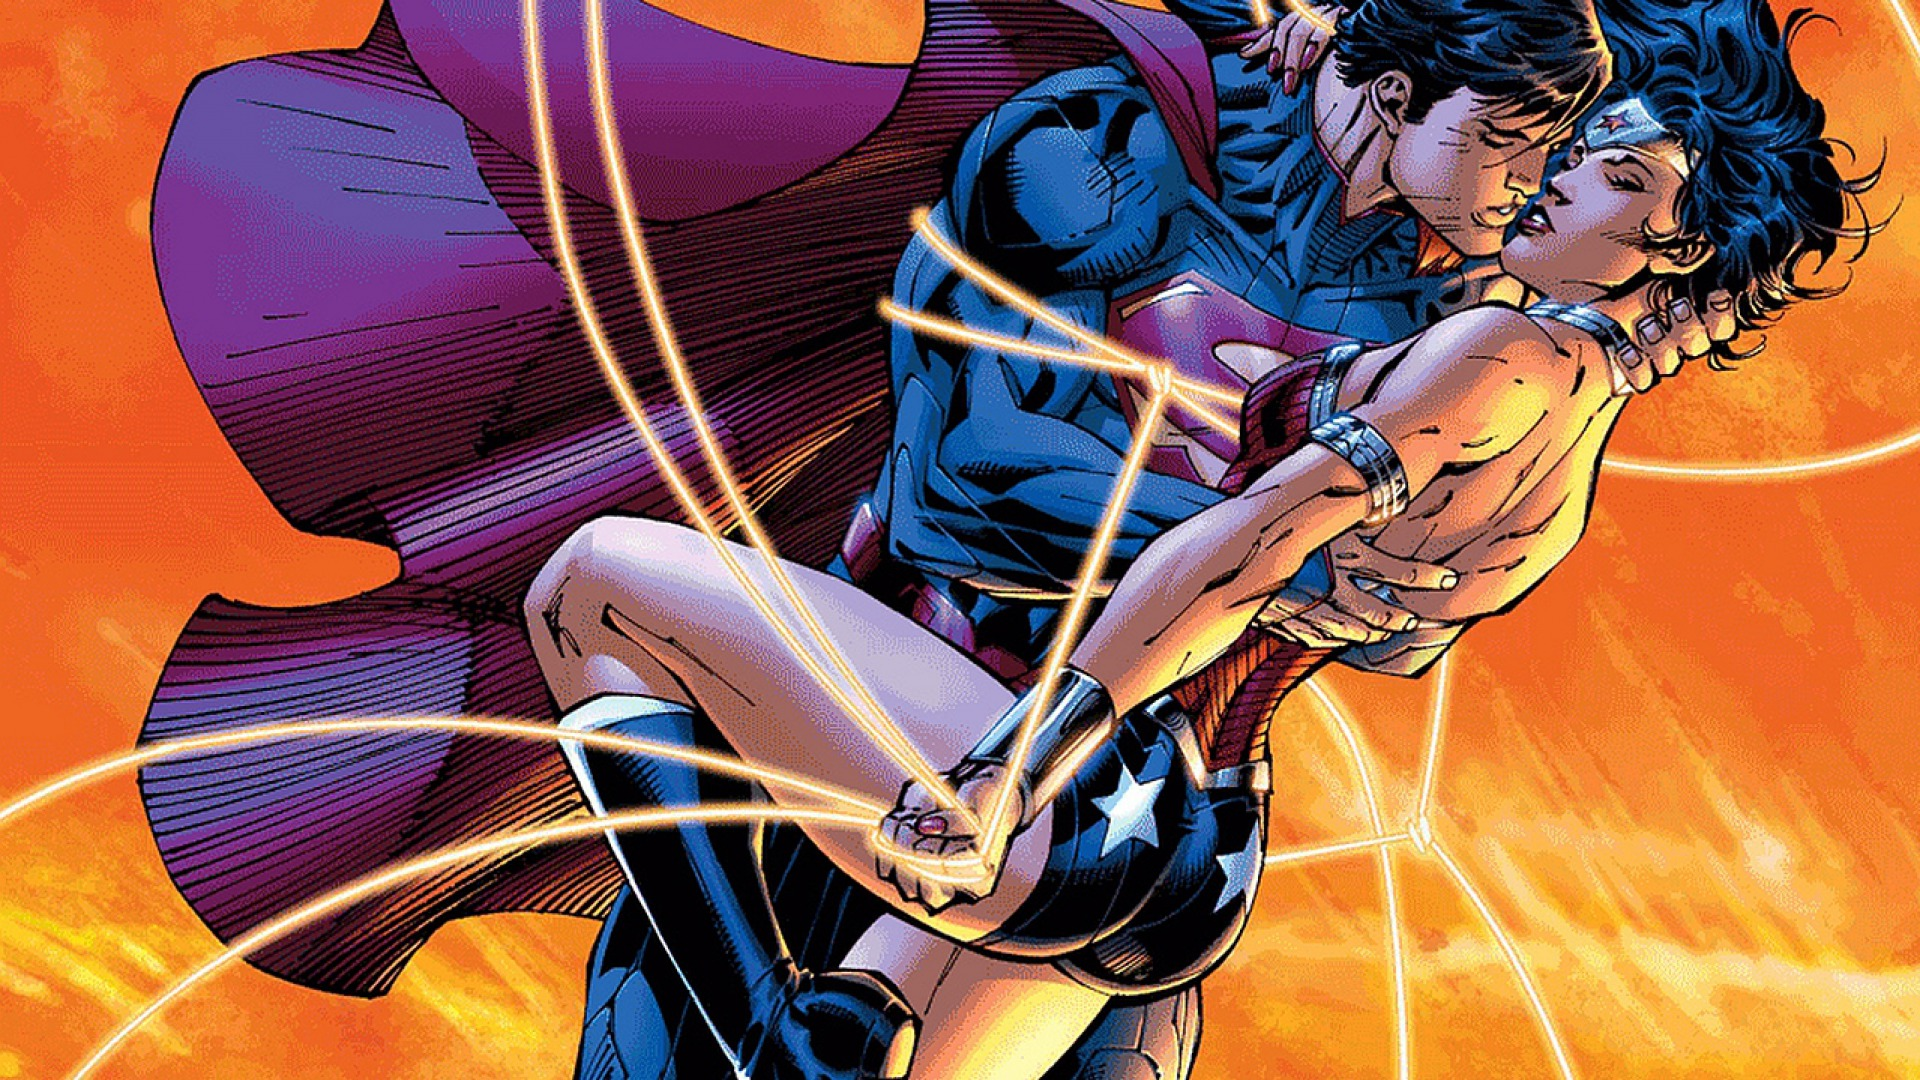 Superman a look at wonder woman and lois lane comiconverse - Superman wonder woman cartoon ...